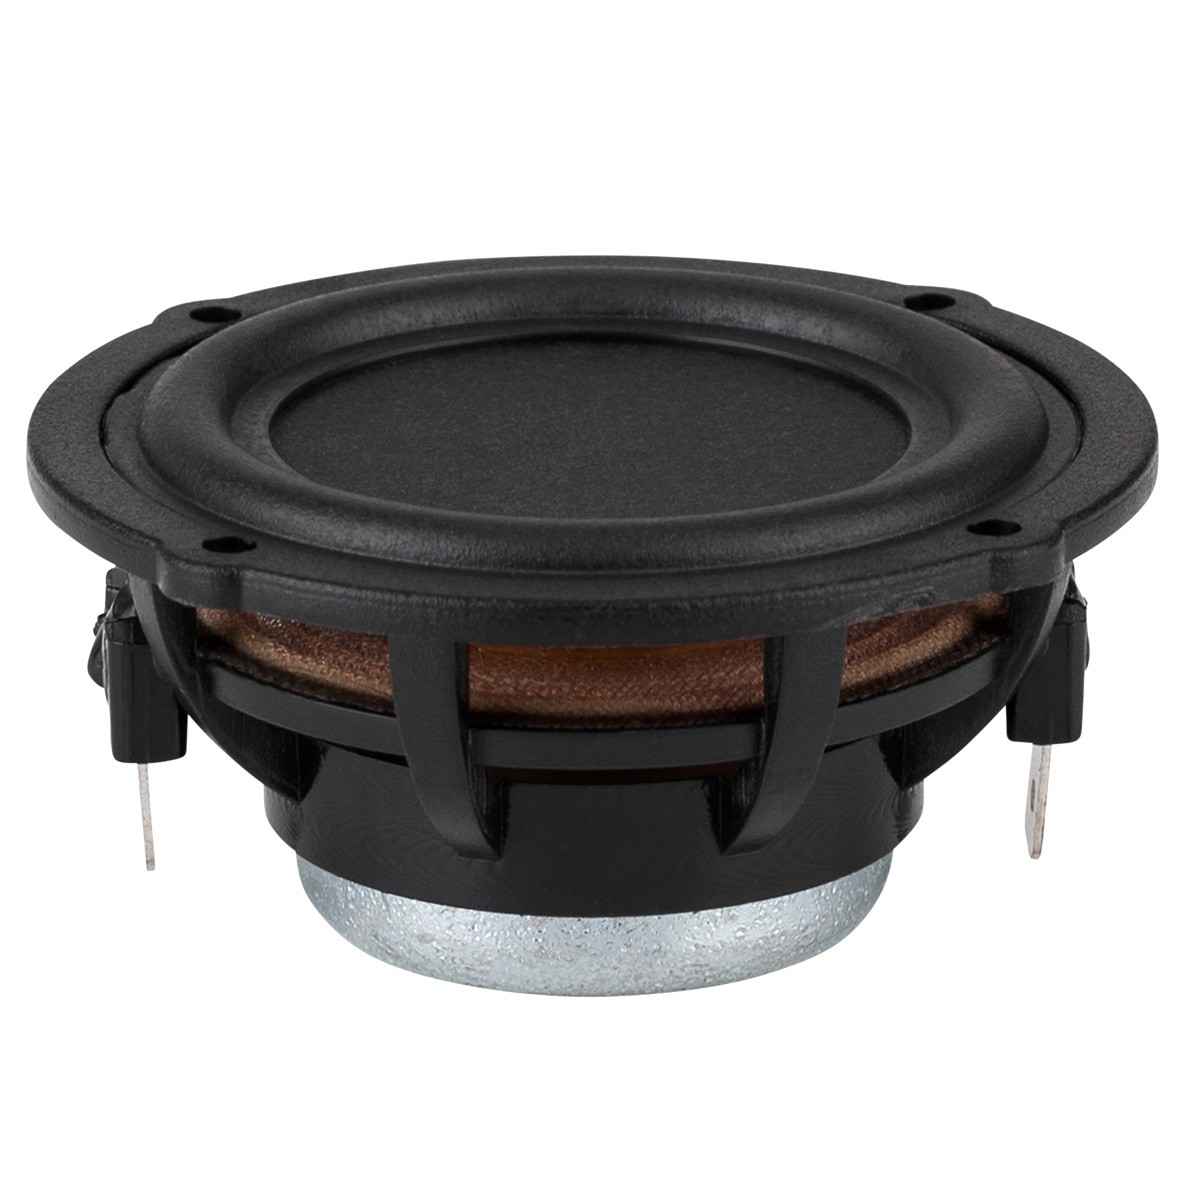 TECTONIC BMR TEBM35C10-4 Speaker Driver Full Range 10W 4 Ohm 80dB 100Hz - 20kHz Ø 5.2cm